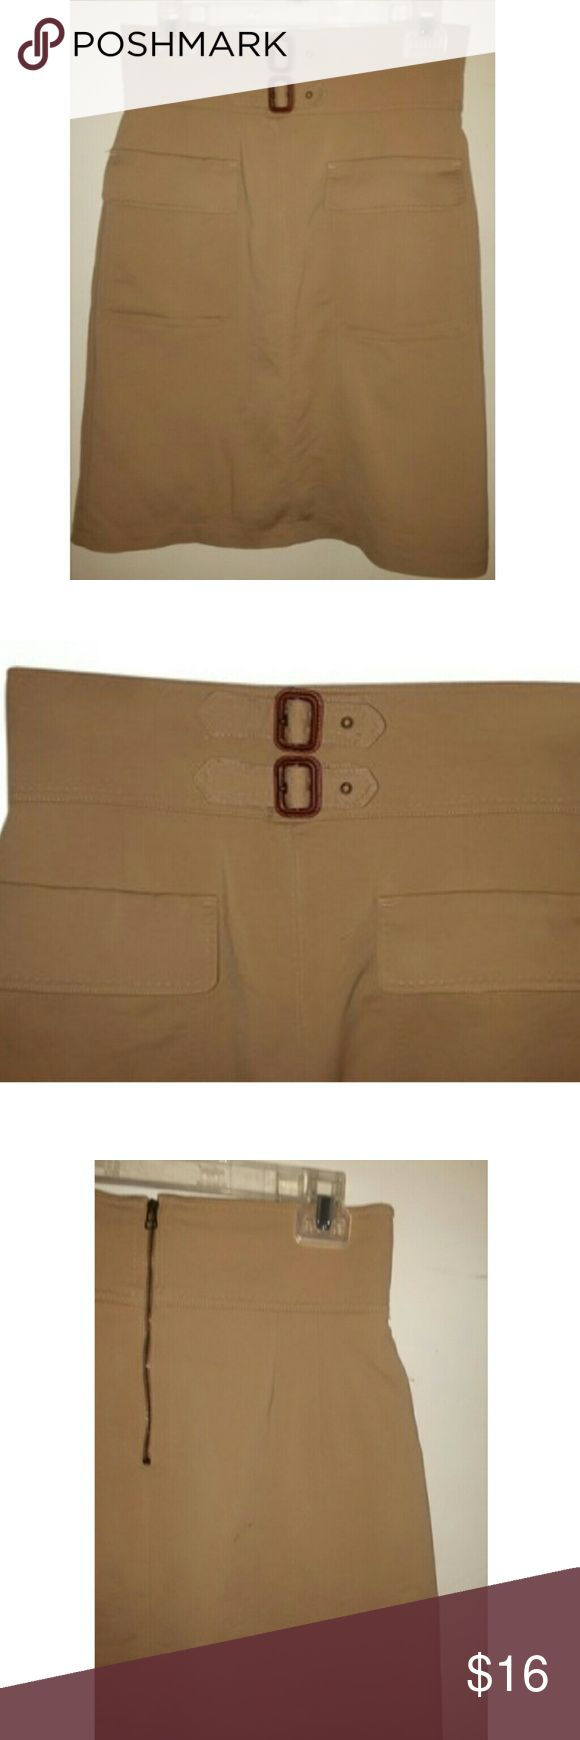 Zara tan pencil skirt with belt and pockets Zara tan pencil skirt - size medium. 23 inch length, fully lined, zips up back, functional buckle on belt adjusts waist, 2 functional flap pockets on front, exposed zipper. 48% cotton, 45% polyamide, 7% elastane. lining is 100% viscose, made in Morocco. NOTE: this skirt has never been worn: however, the lining is ripped because I purchased the skirt w/o trying on and when I DID try it on I tore it - smooth! Zara Skirts Pencil